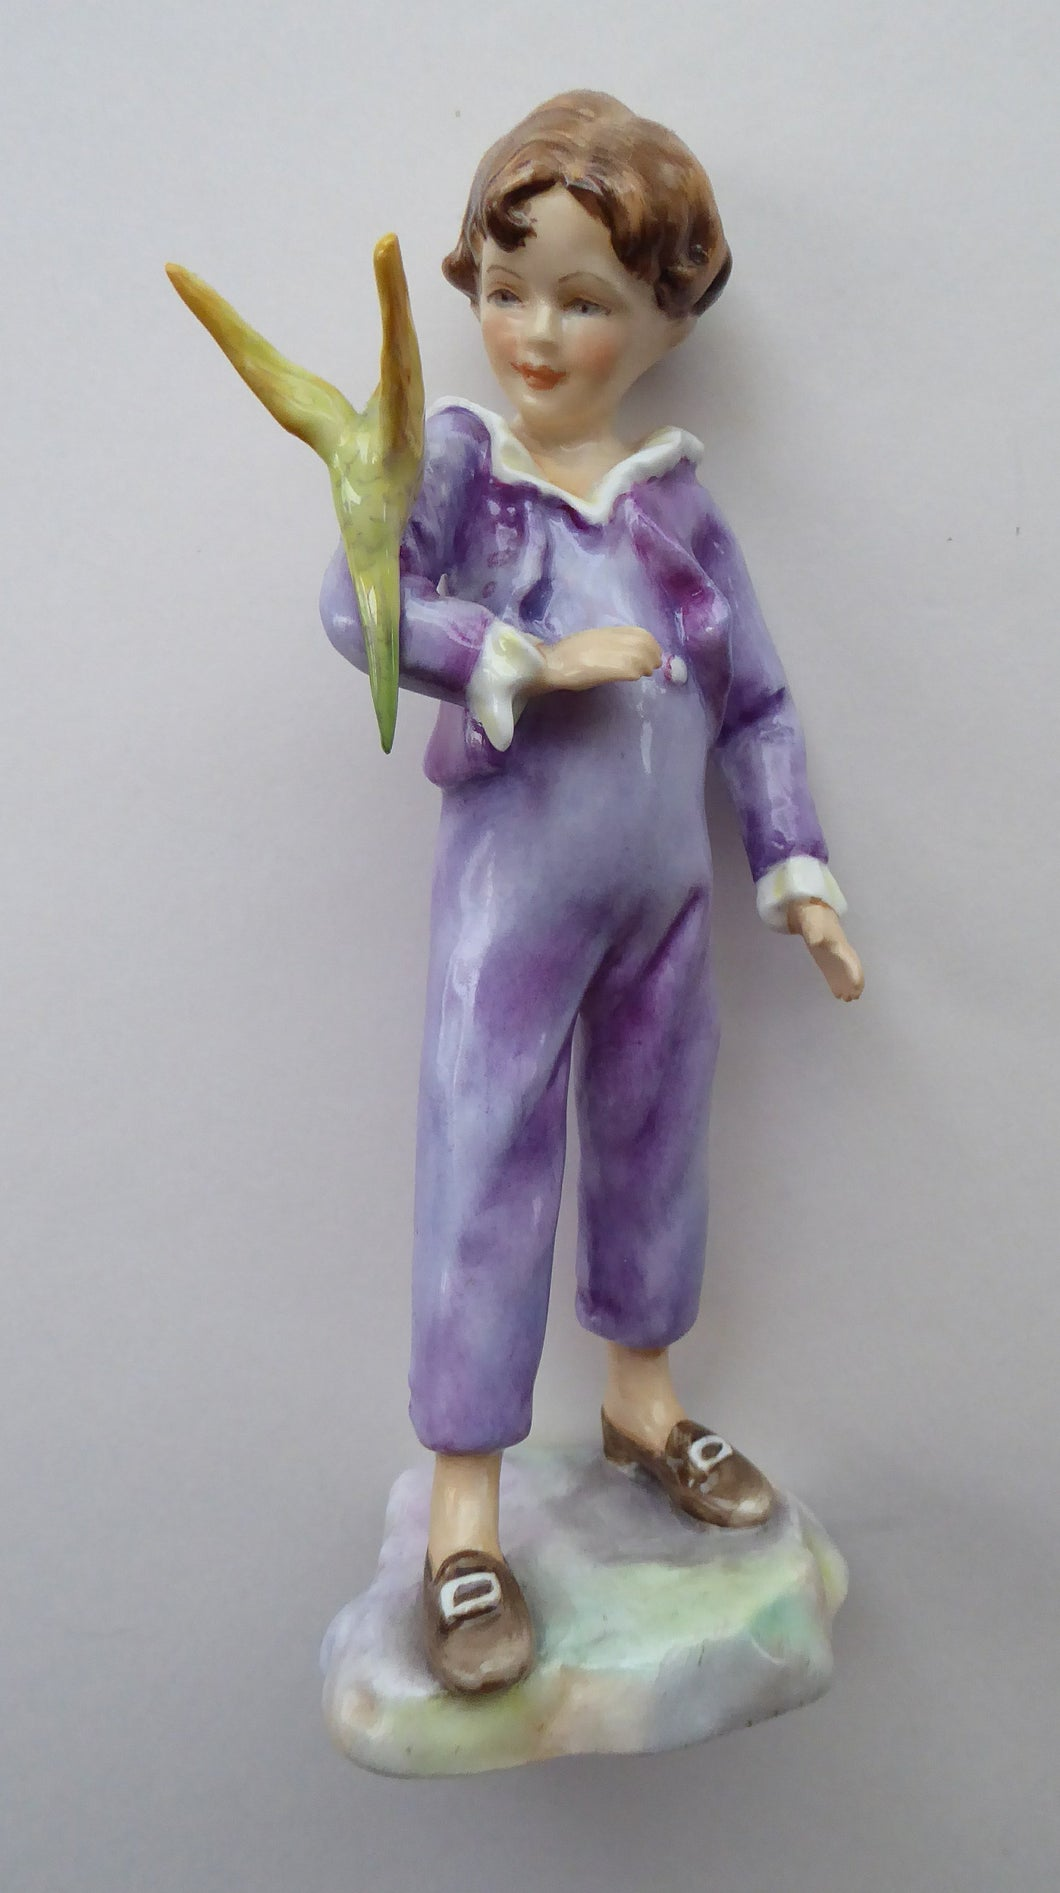 Vintage Royal Worcester Figurine The Parakeet. Modelled by Freda Doughty (3087). Rarer Purple Colour and Yellow Bird. PERFECT